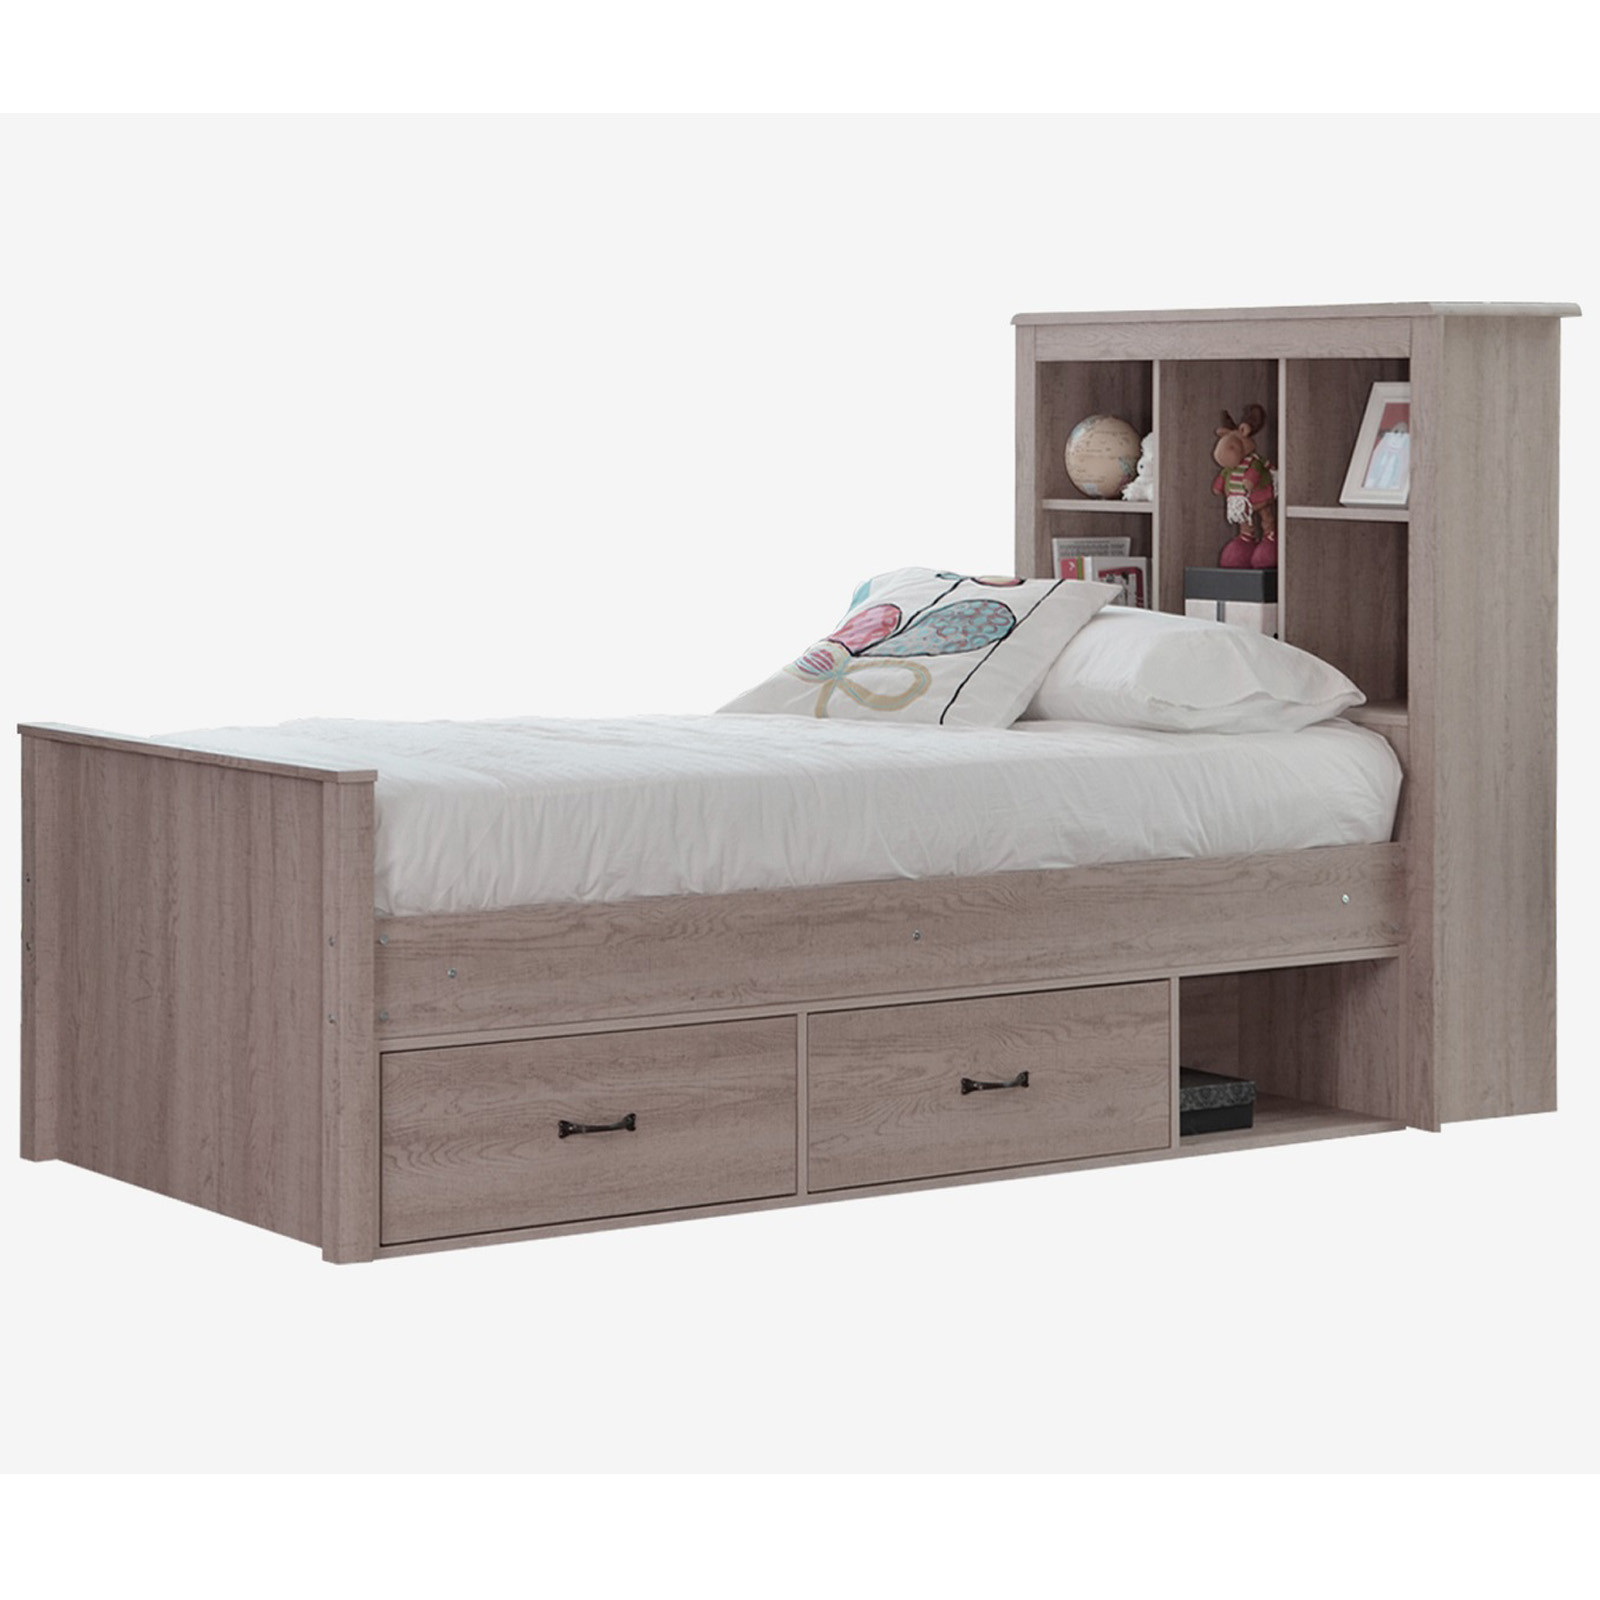 King Single Bed With Drawers King Single Bed With Book Shelf Drawers Sonoma Oak